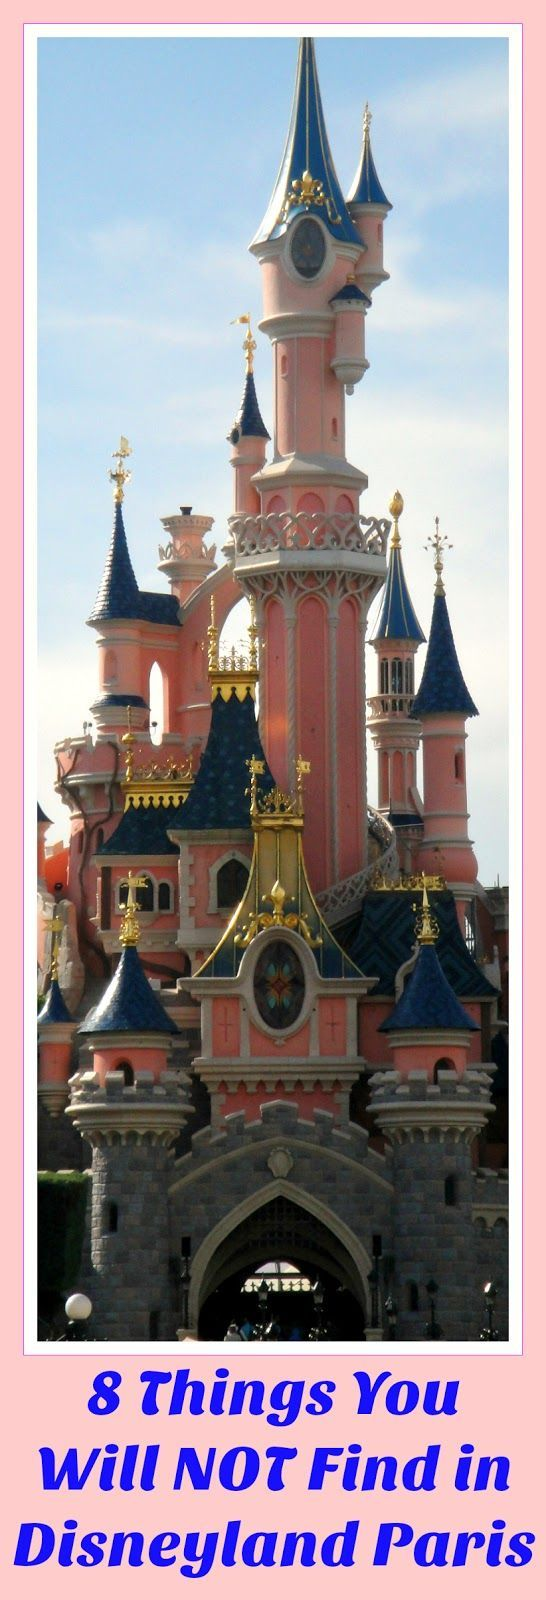 Things Americans Will NOT Find In Disneyland Paris Disneyland - 8 things to see and do in southern france